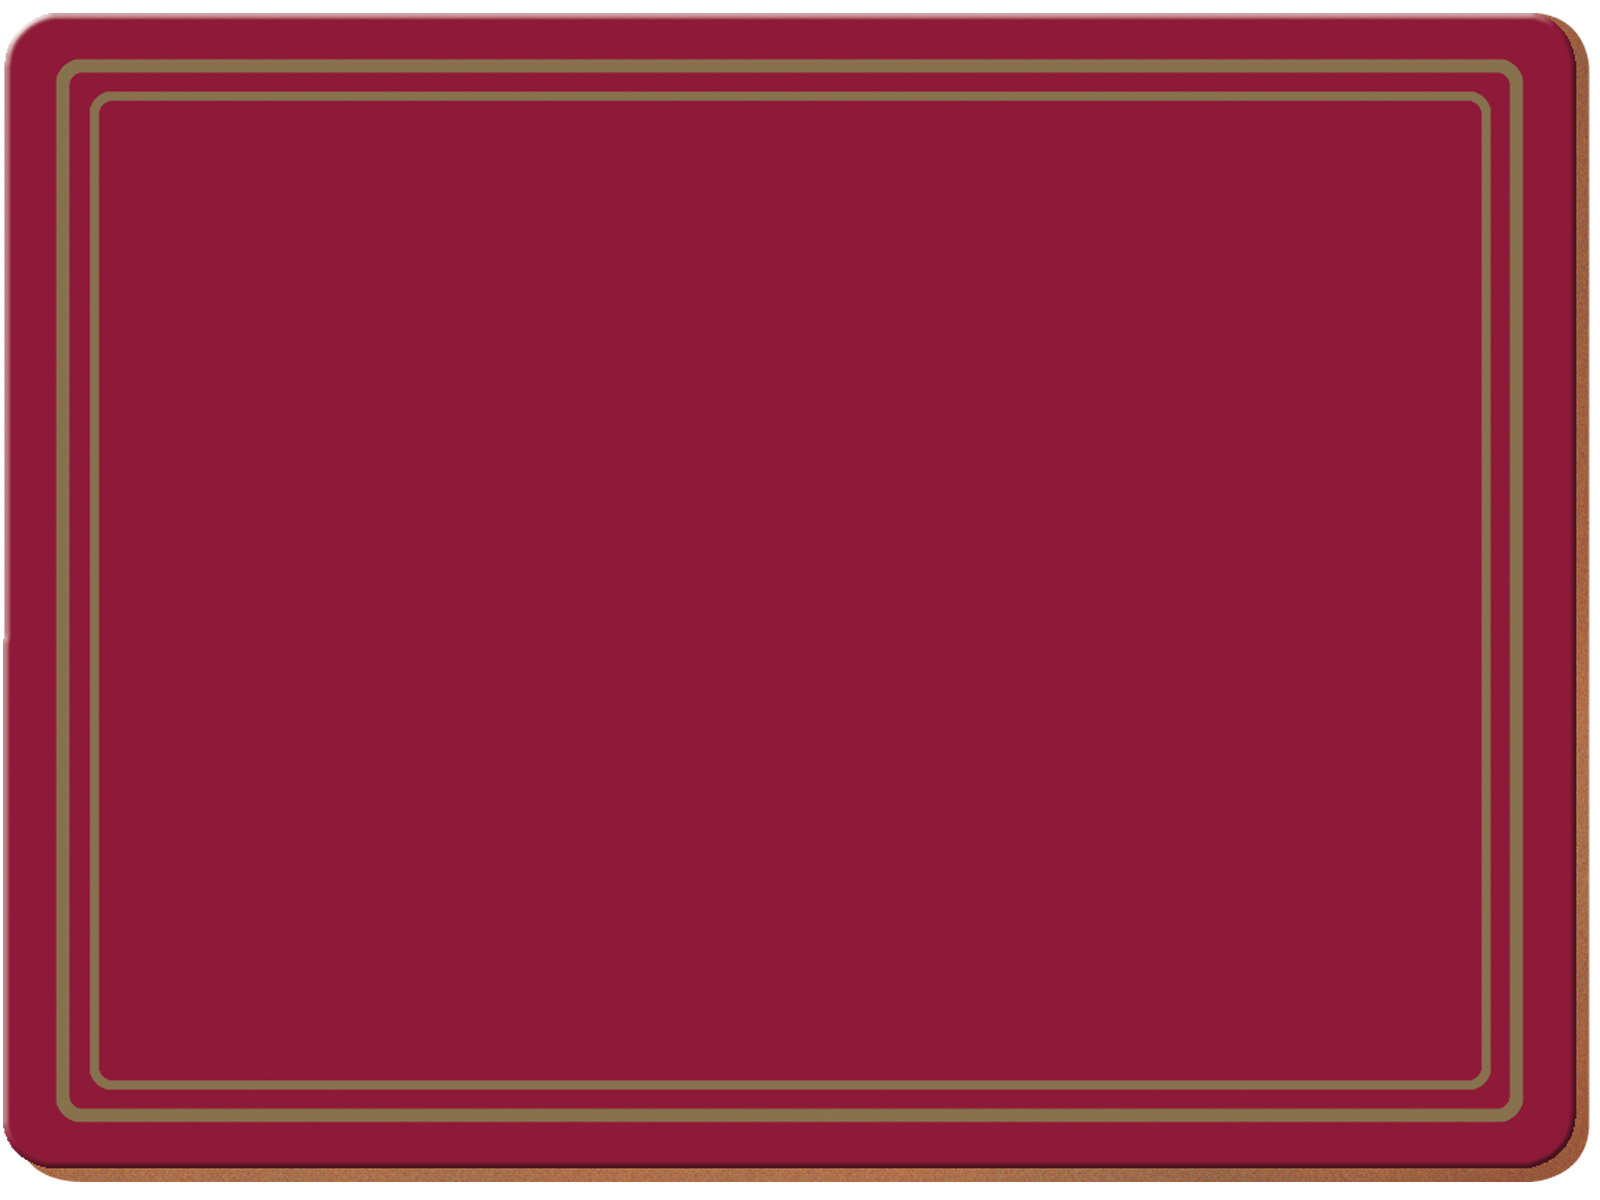 Creative Tops Classic Pack Of 6 Premium Placemats Red